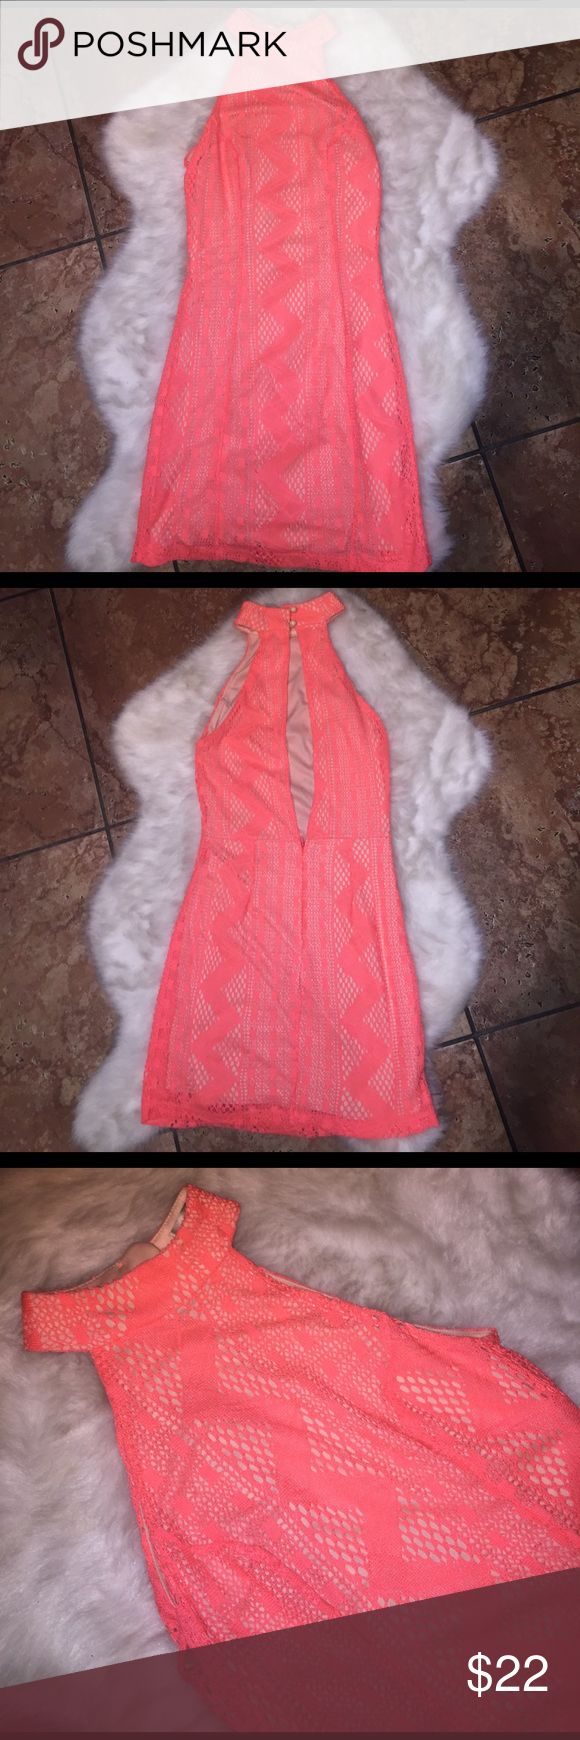 Cute Neon Orange Nude Illusion Festival Dress Keep it classy at your next Rave or Festival type party. Good for summer nights out or nightclub nights. Pretty bright Coral/ Nude Illusion. Vibrant, fun color.  Keyhole back & and short hem keeps it sexy.  High Neck keeps jt classy.  ☄️ Dresses